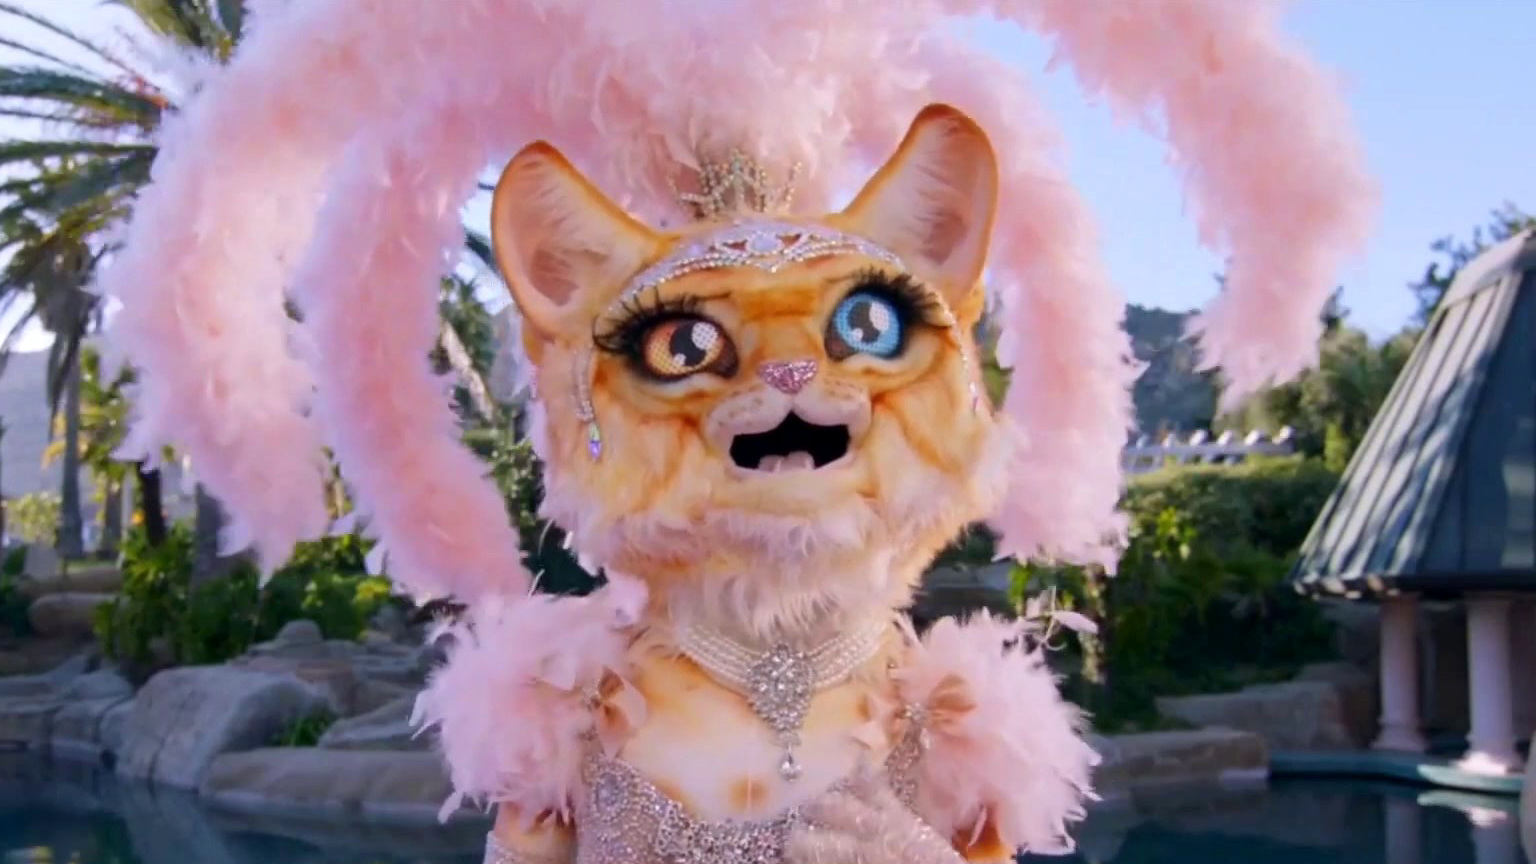 The Masked Singer: The Clues: Kitty